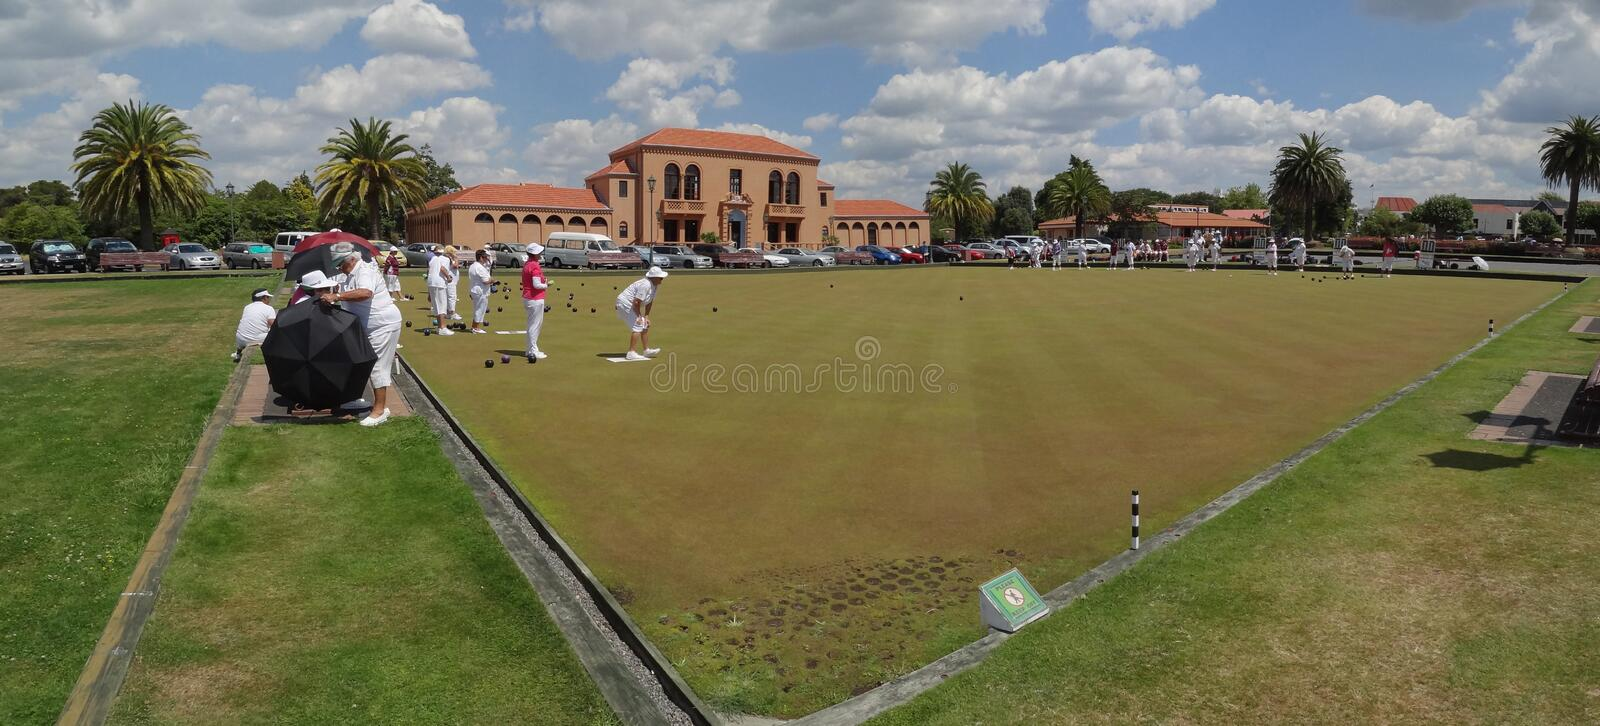 Lawn Bowling at the Government Gardens royalty free stock images